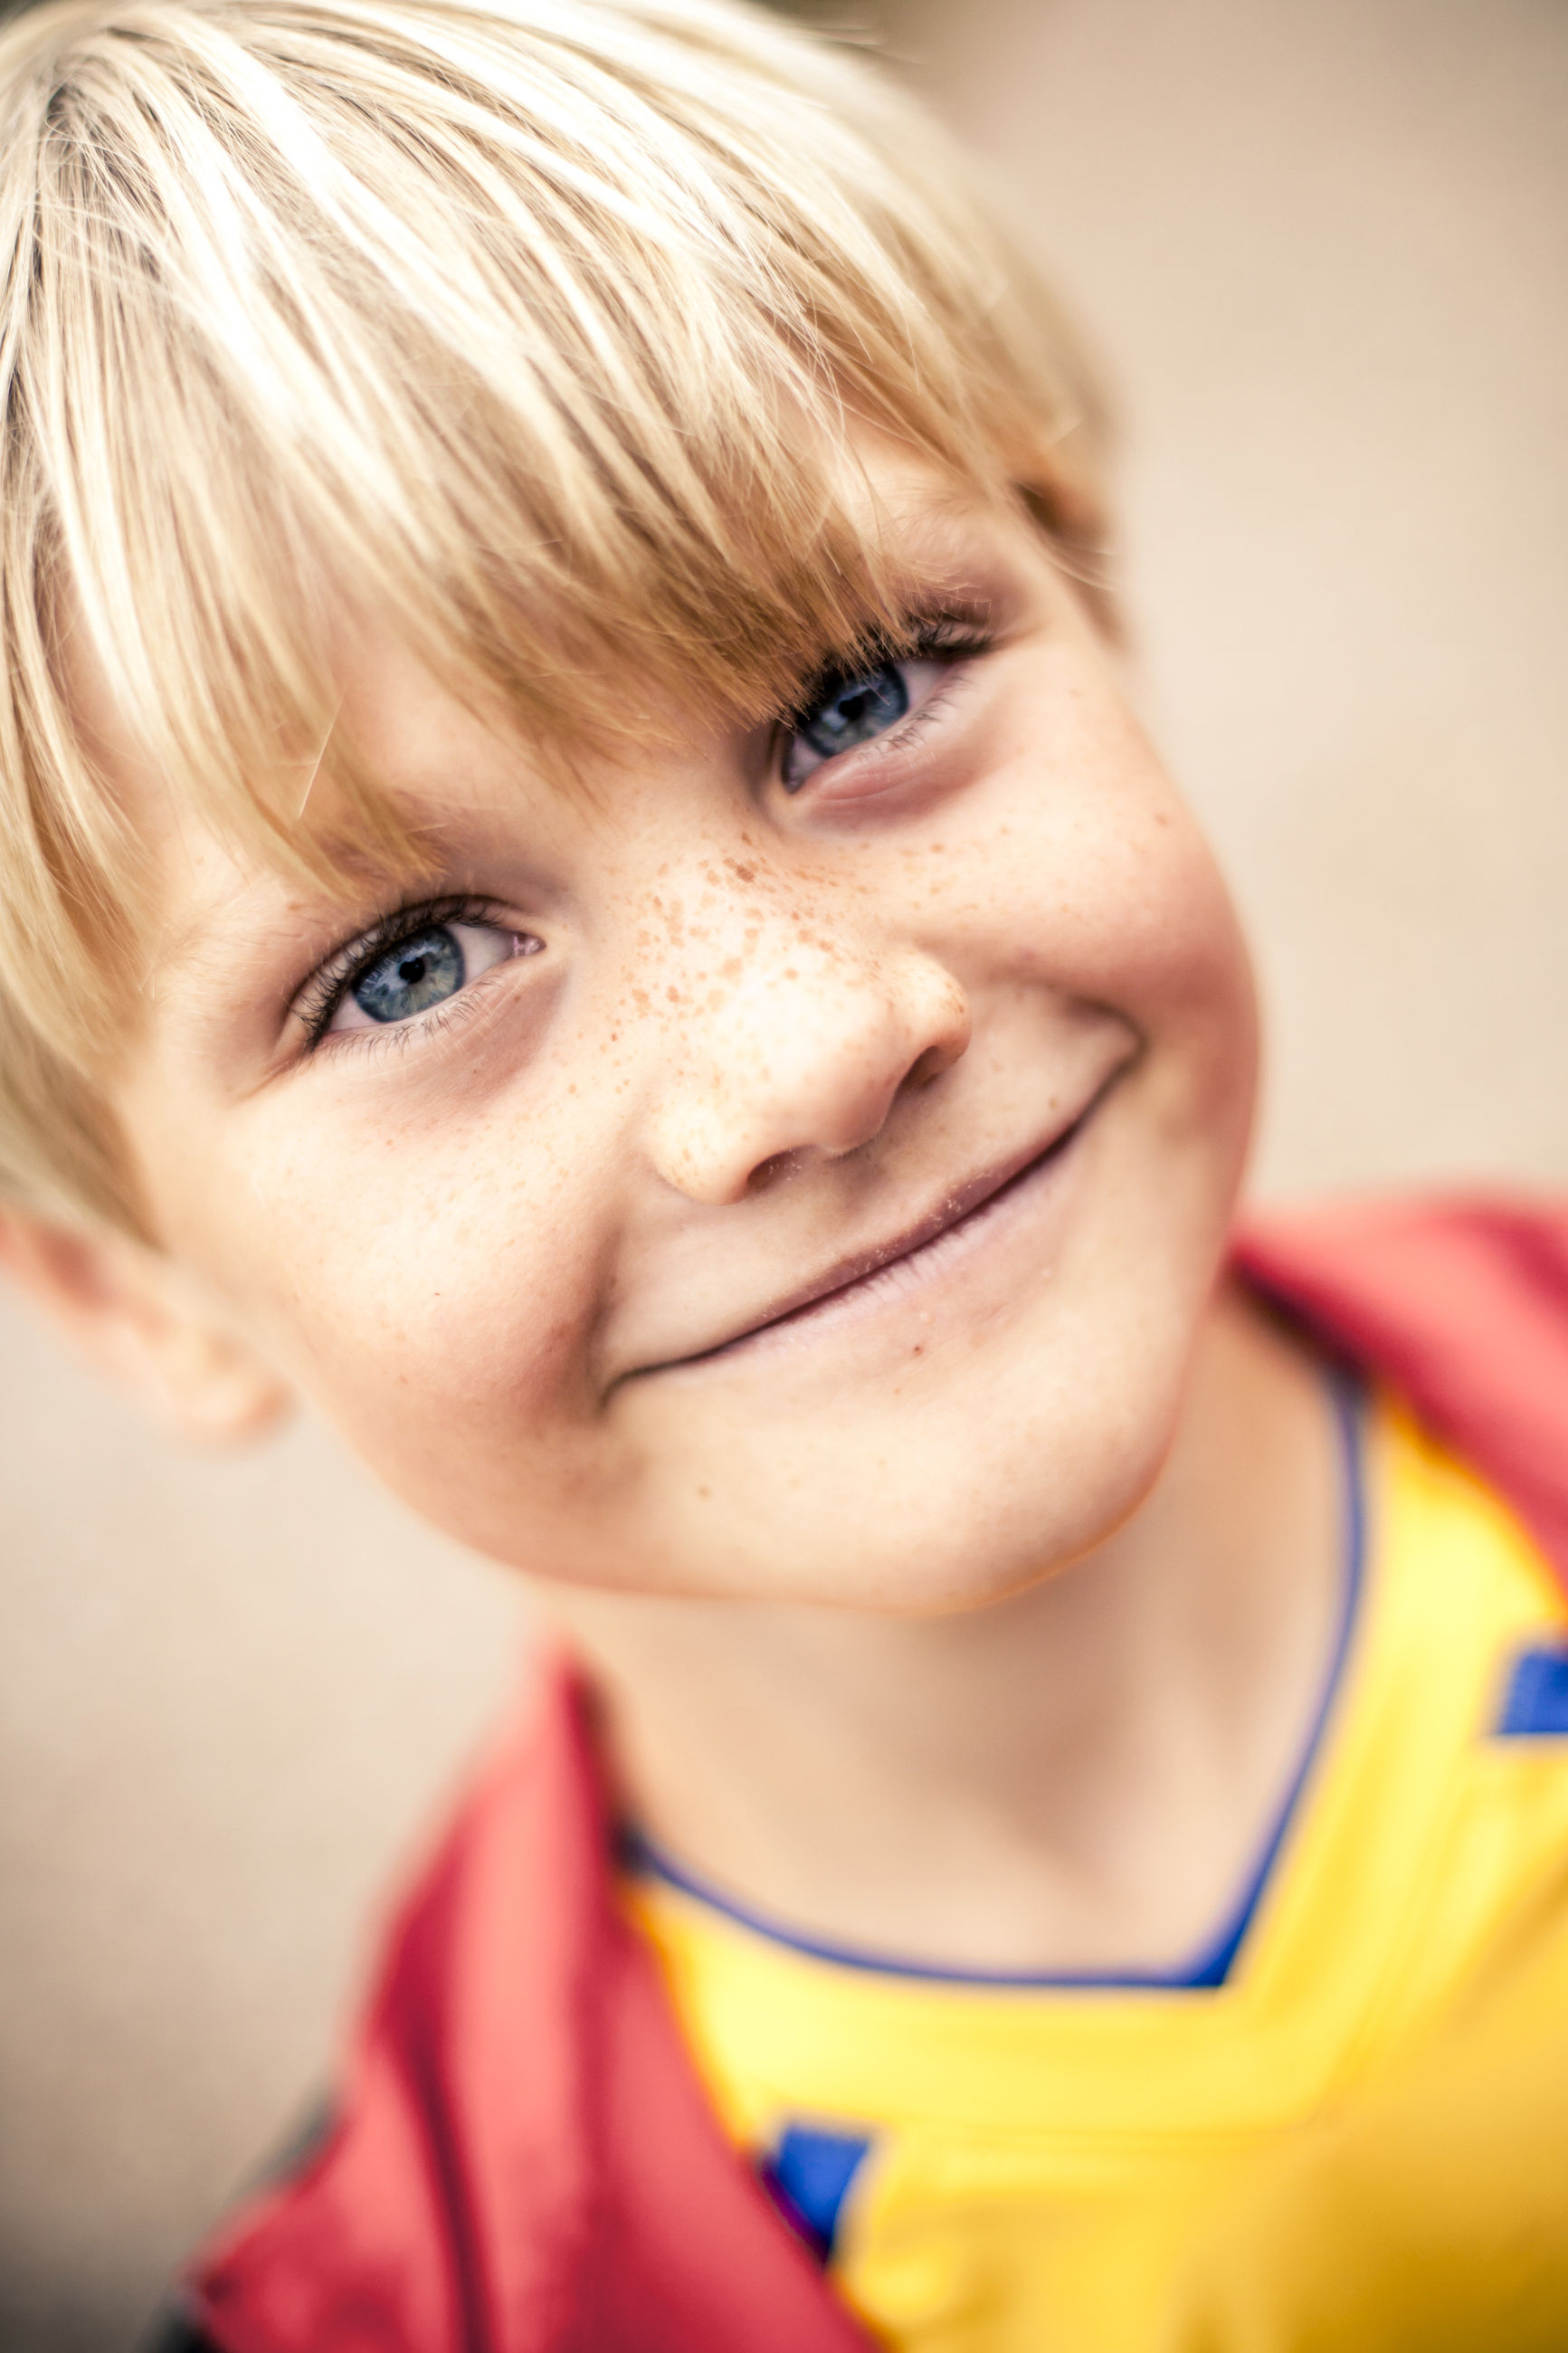 CLOSE-UP PORTRAIT OF SMILING BOY WITH FACE